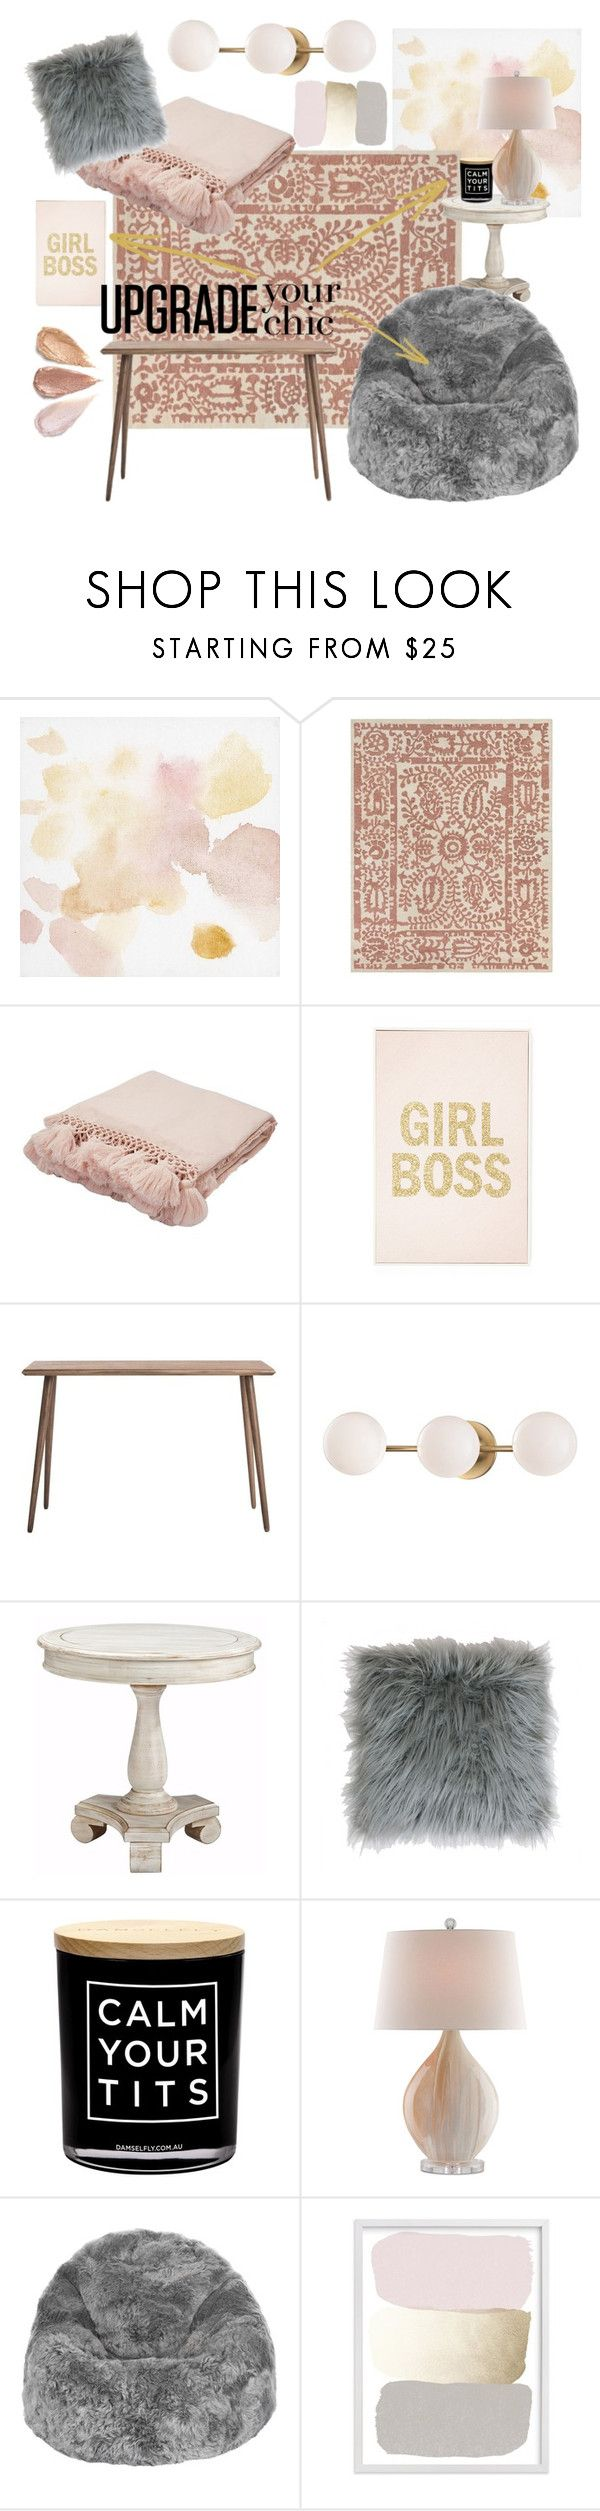 Eighty three by haileyperryman on Polyvore featuring interior, interiors, interior design, home, home decor, interior decorating, A by Amara, Safavieh, Jaipur and Rituel de Fille